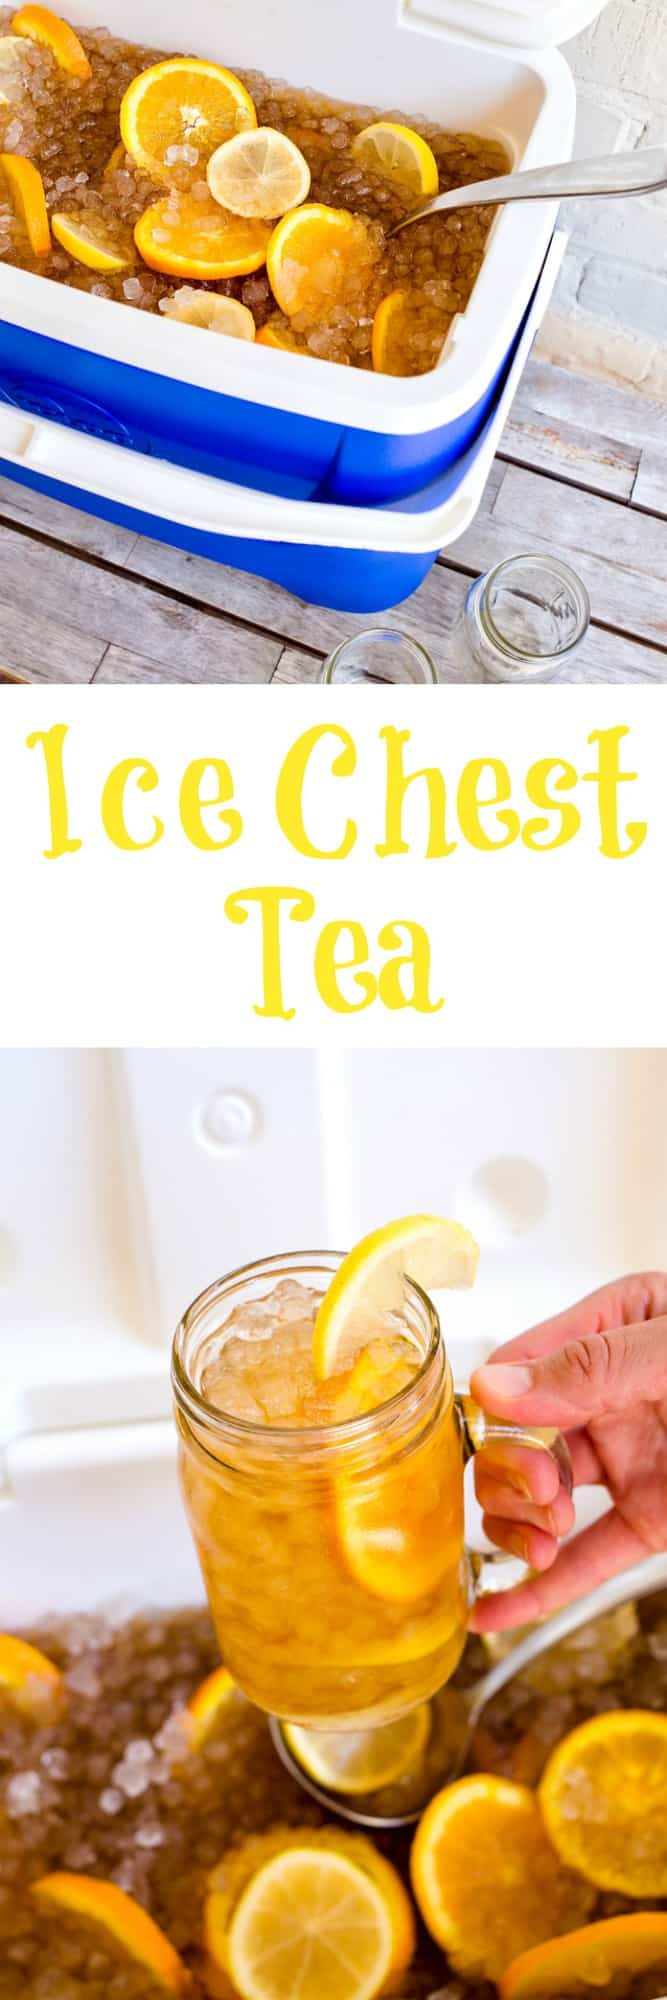 Ice Chest Tea